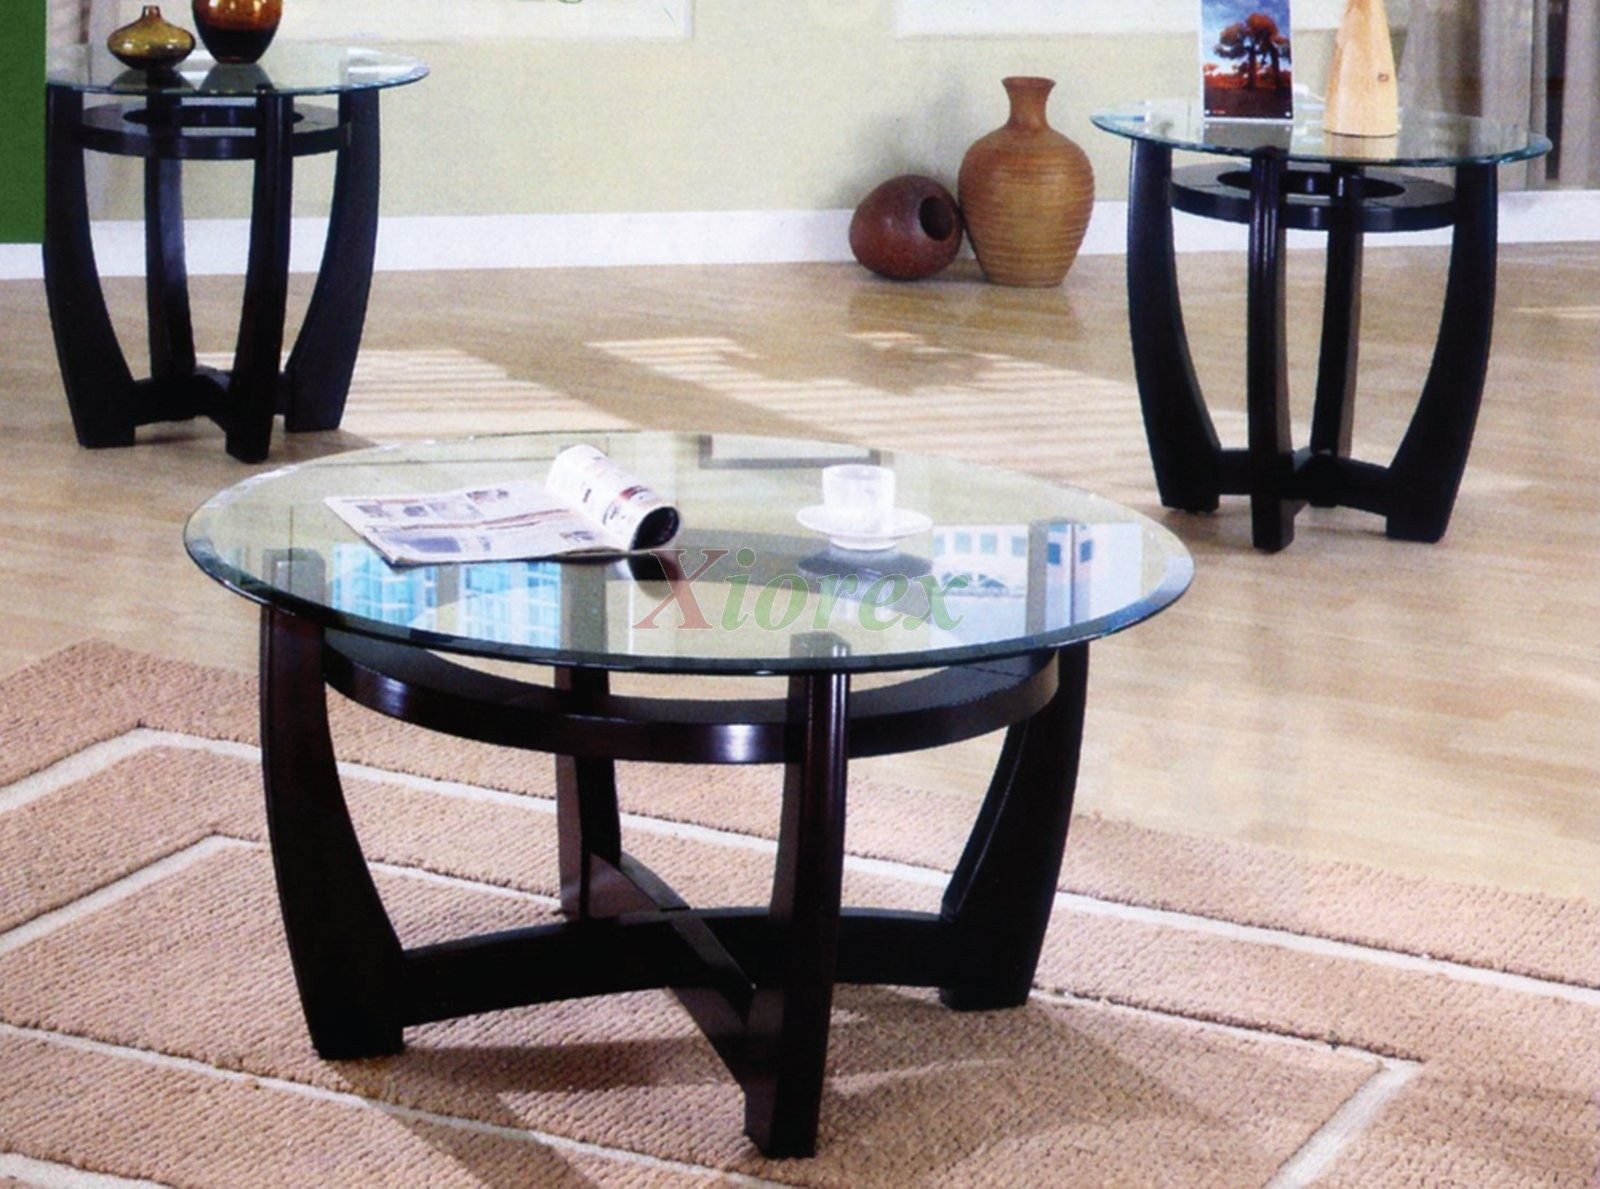 Ursa 3 piece Living Room Table SetXiorex